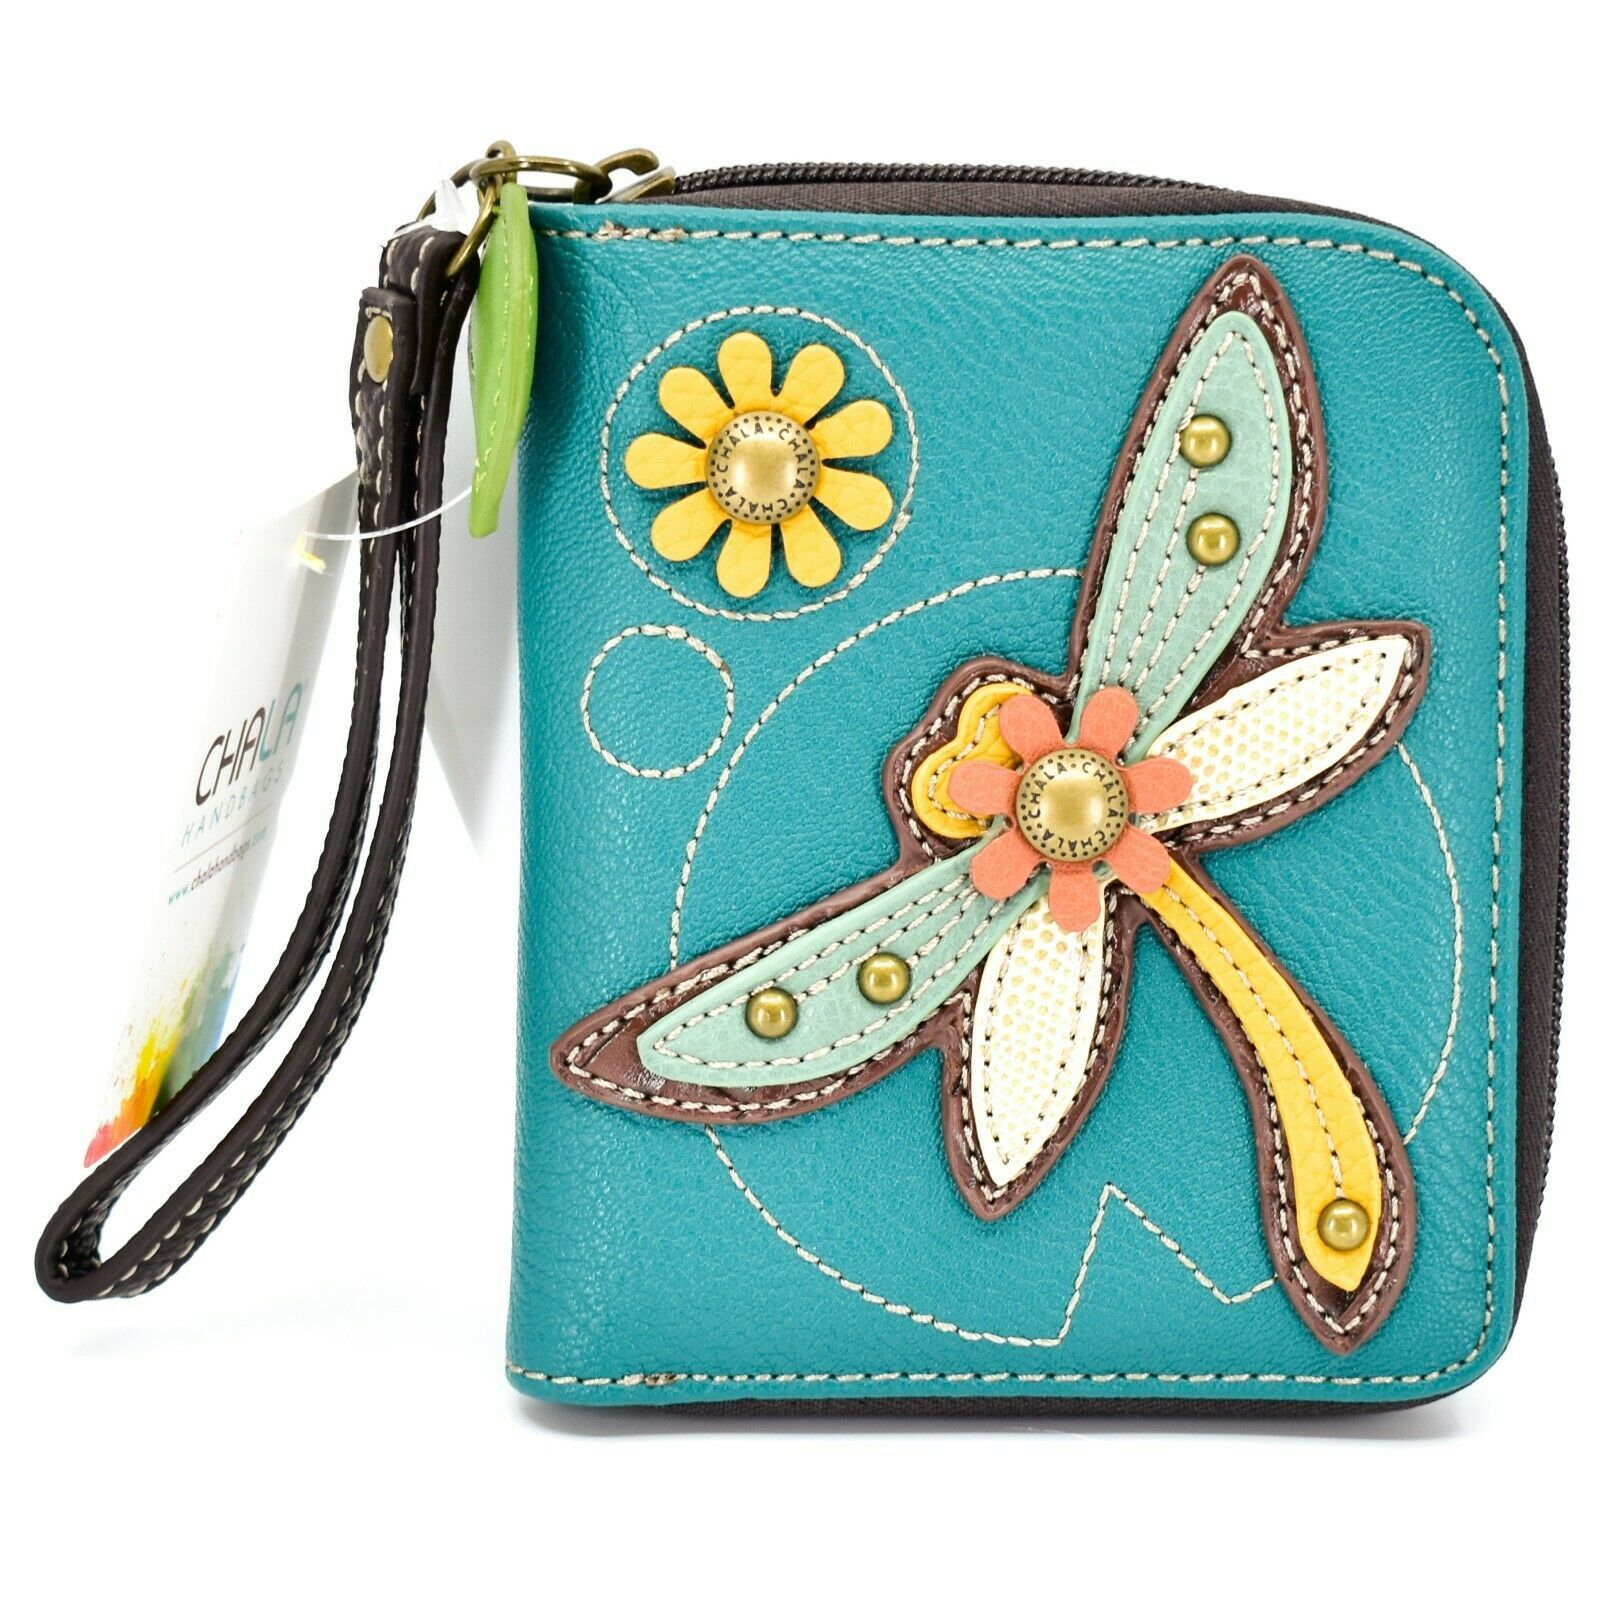 Chala Handbags Faux Leather Whimsical Dragonfly Zip Around Wristlet Wallet